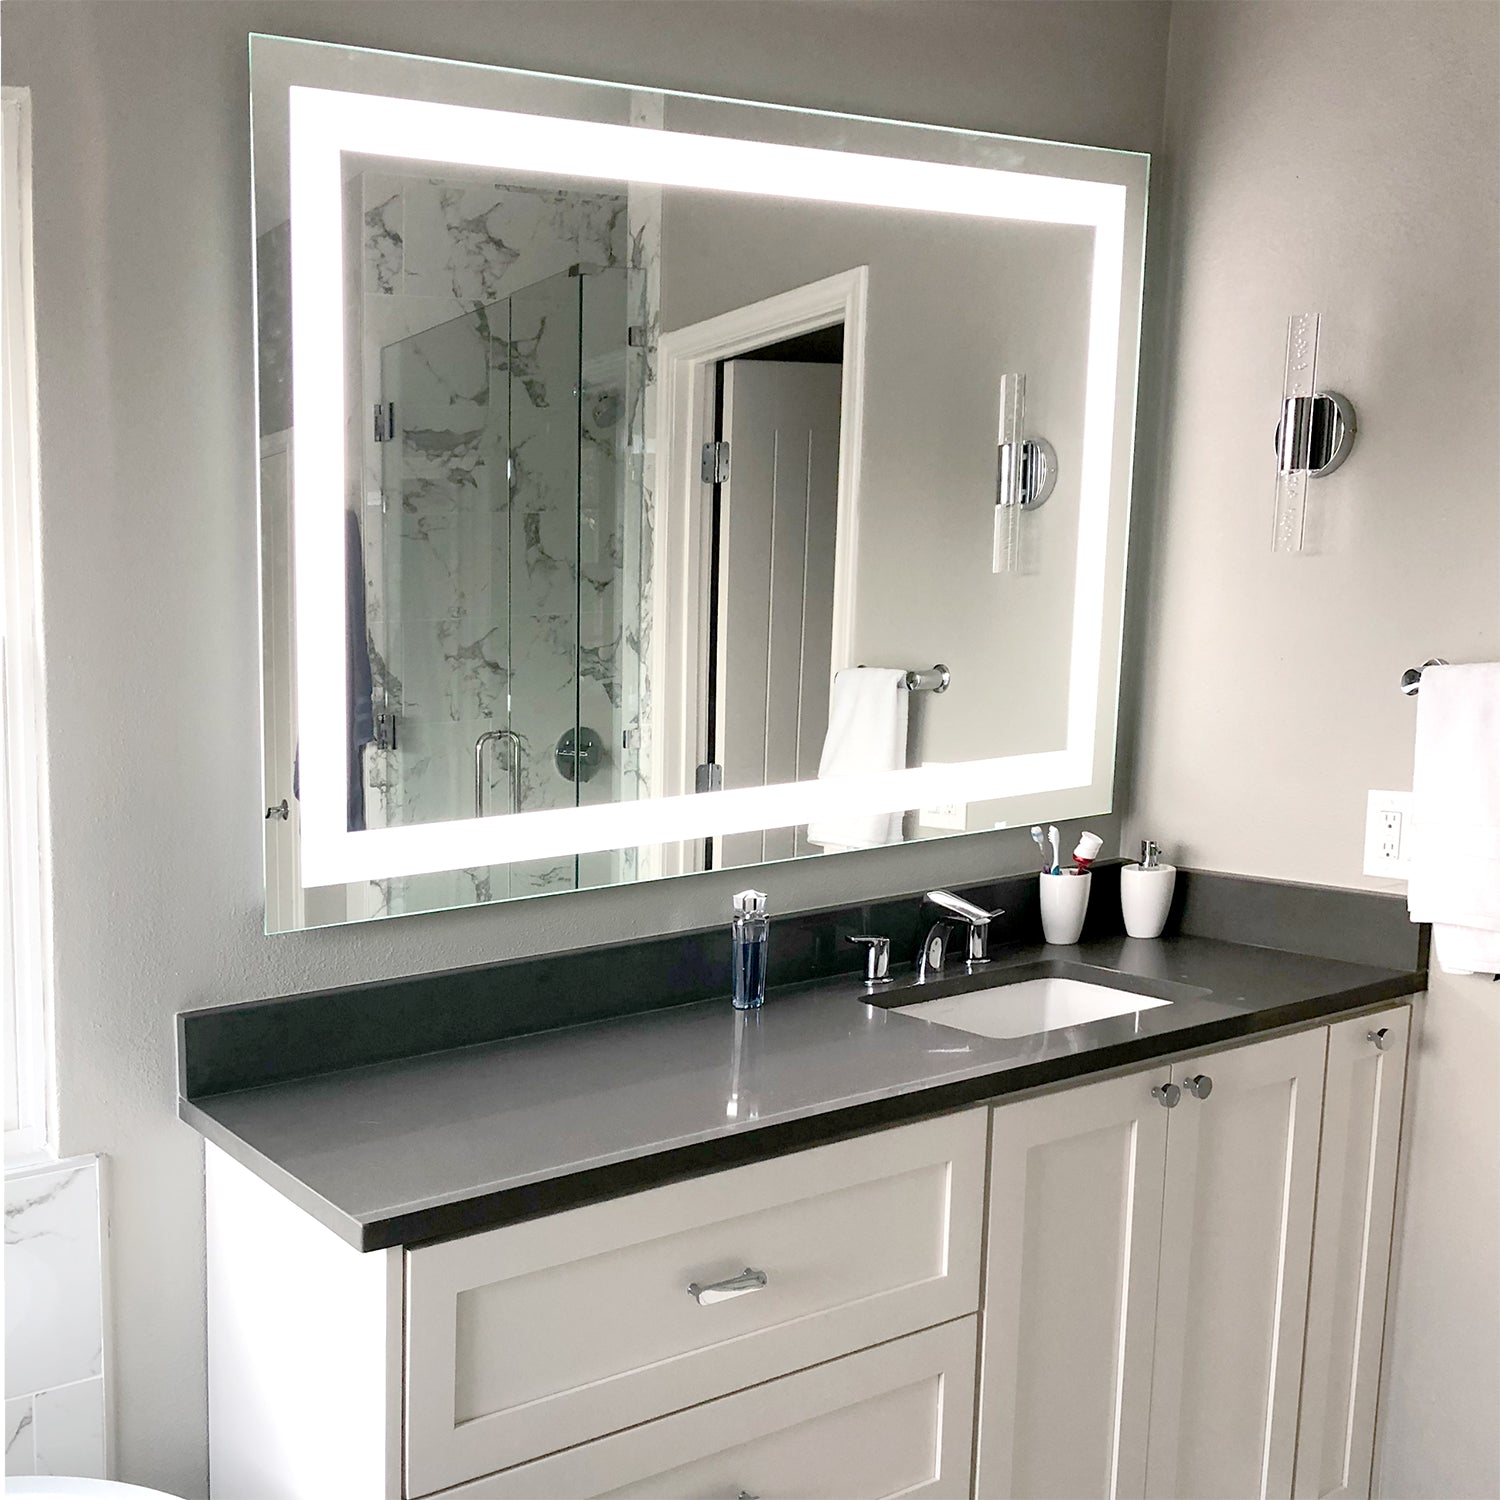 Front Lighted Led Bathroom Vanity Mirror 32 Quot X 24